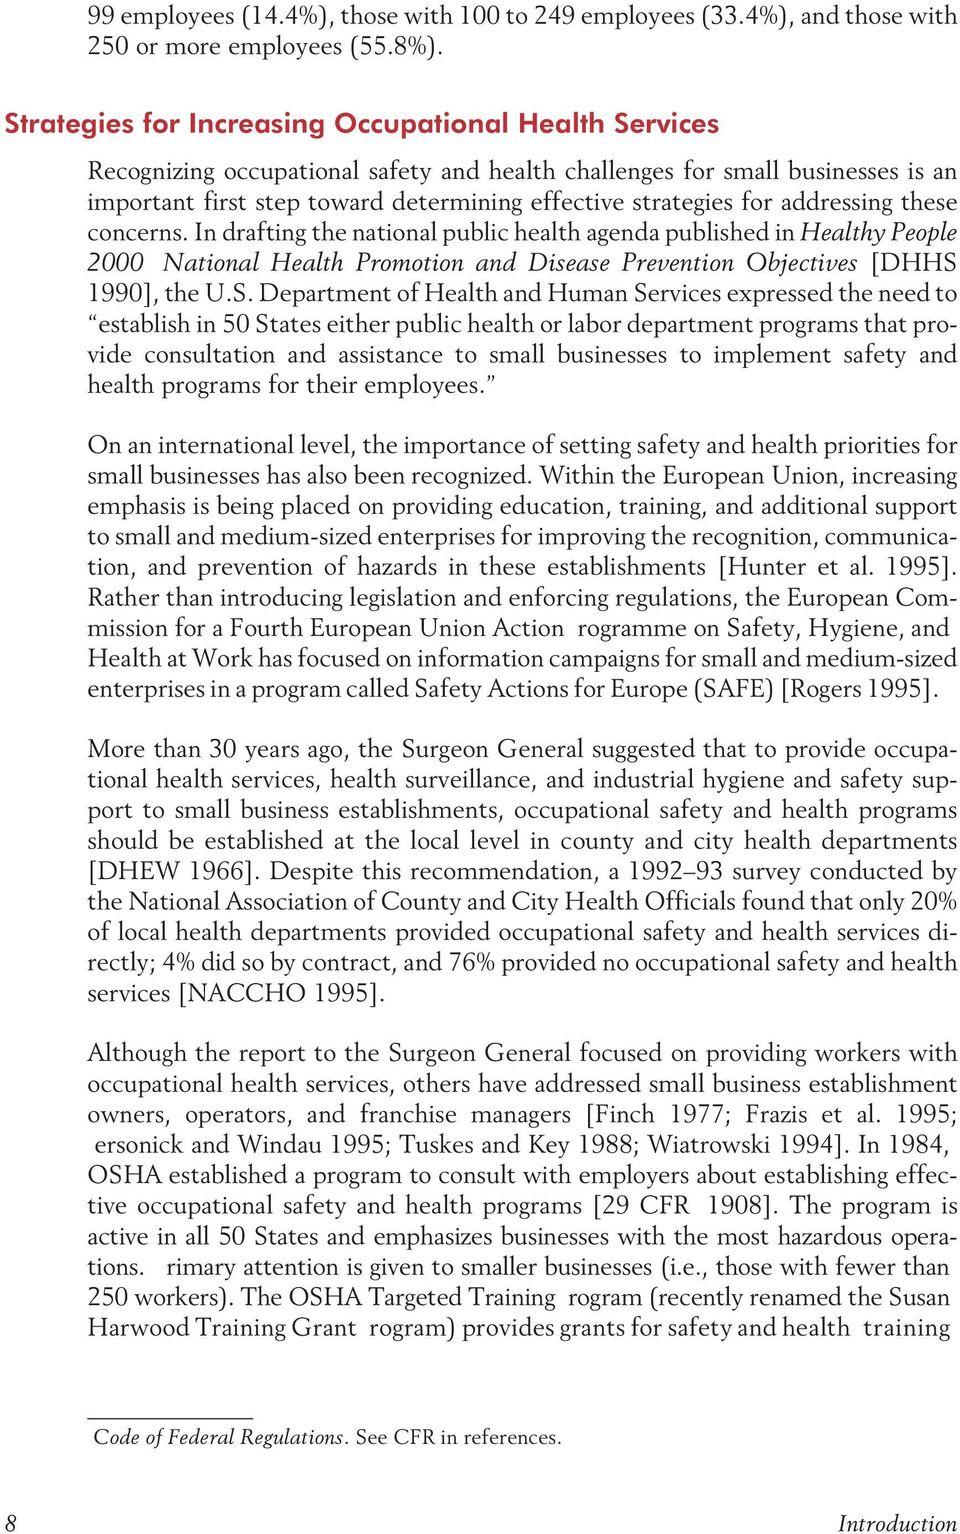 for addressing these concerns. In drafting the national public health agenda published in Healthy People 2000 National Health Promotion and Disease Prevention Objectives [DHHS